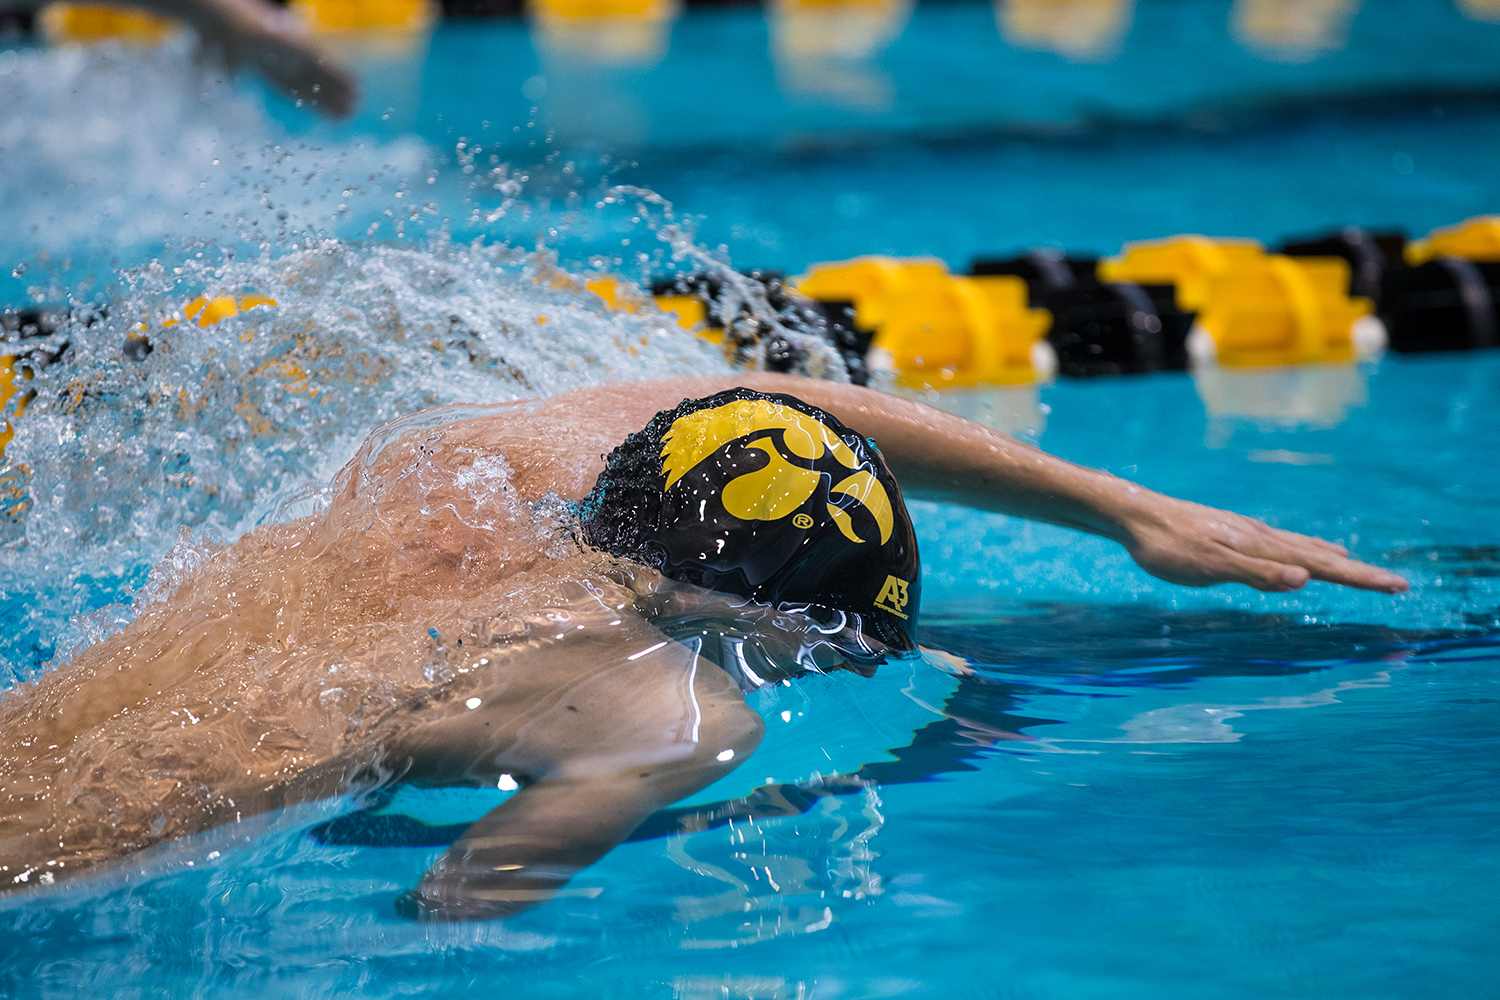 Iowa%27s+Joe+Myhre+%28JR%29+prepares+to+swim+50+freestyle+during+the+second+day+of+the+2019+Big+Ten+Men%27s+Swimming+and+Diving+Championships+at+the+CRWC+on+Thursday%2C+February+28%2C+2019.+